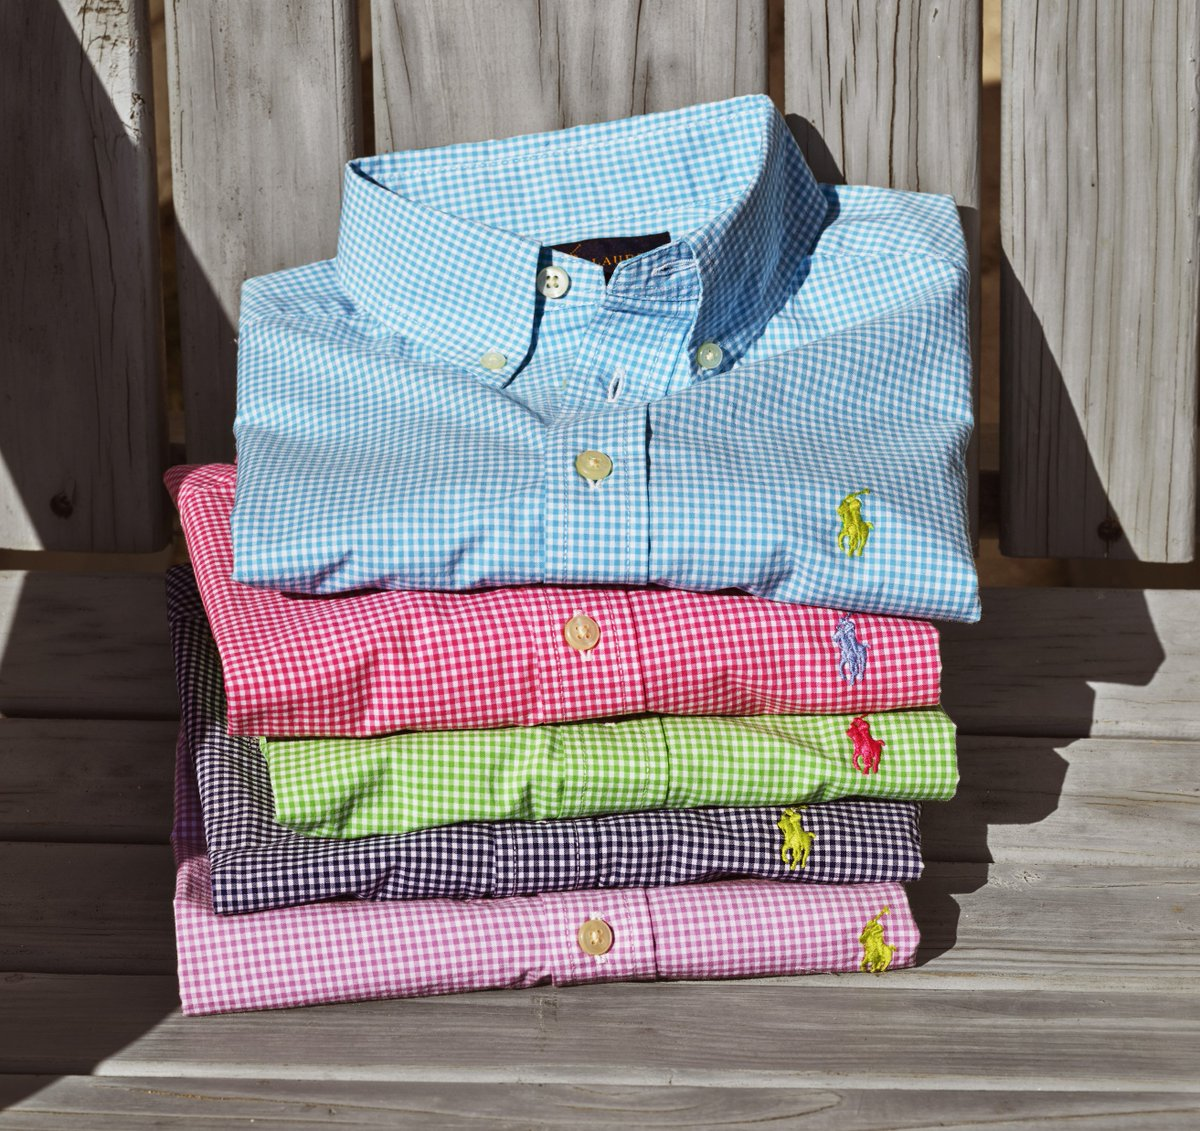 Take your pick: The #Polo Cotton Poplin Shirt in spring's best and brightest colors. #RLKids https://t.co/zfHQ3B0Fzf